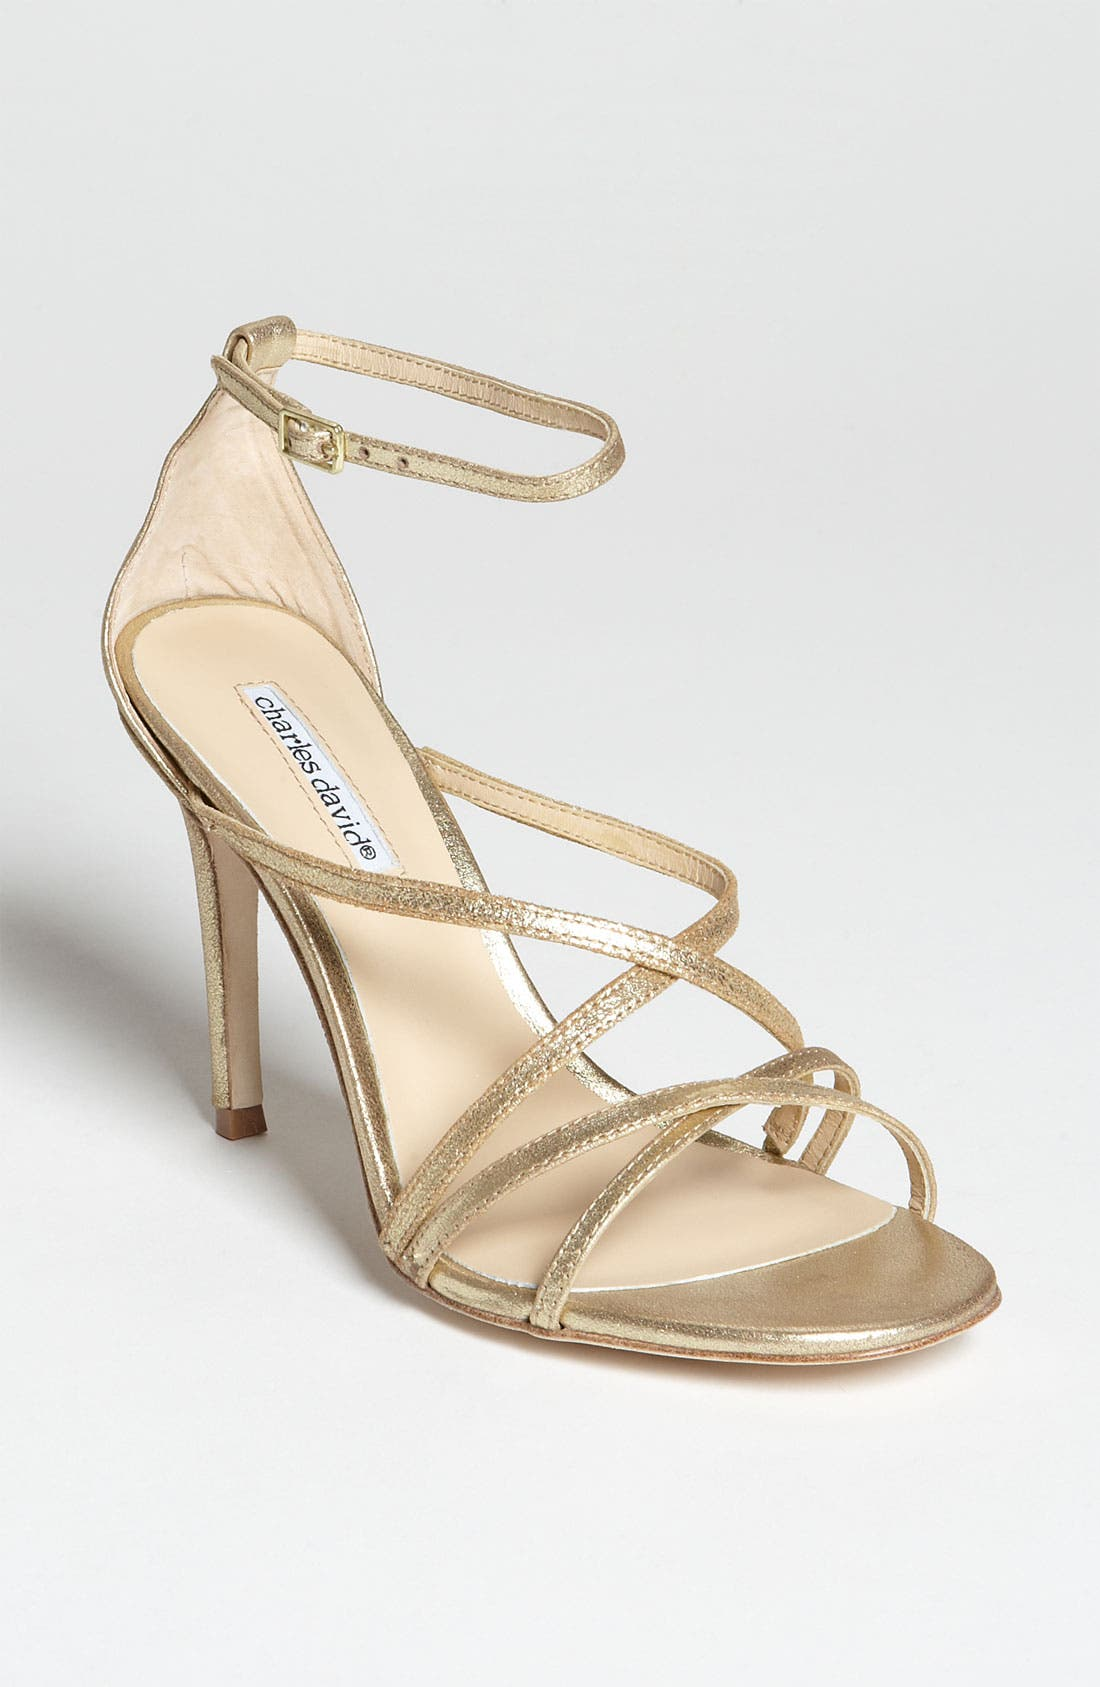 Alternate Image 1 Selected - Charles David 'Morgan' Sandal